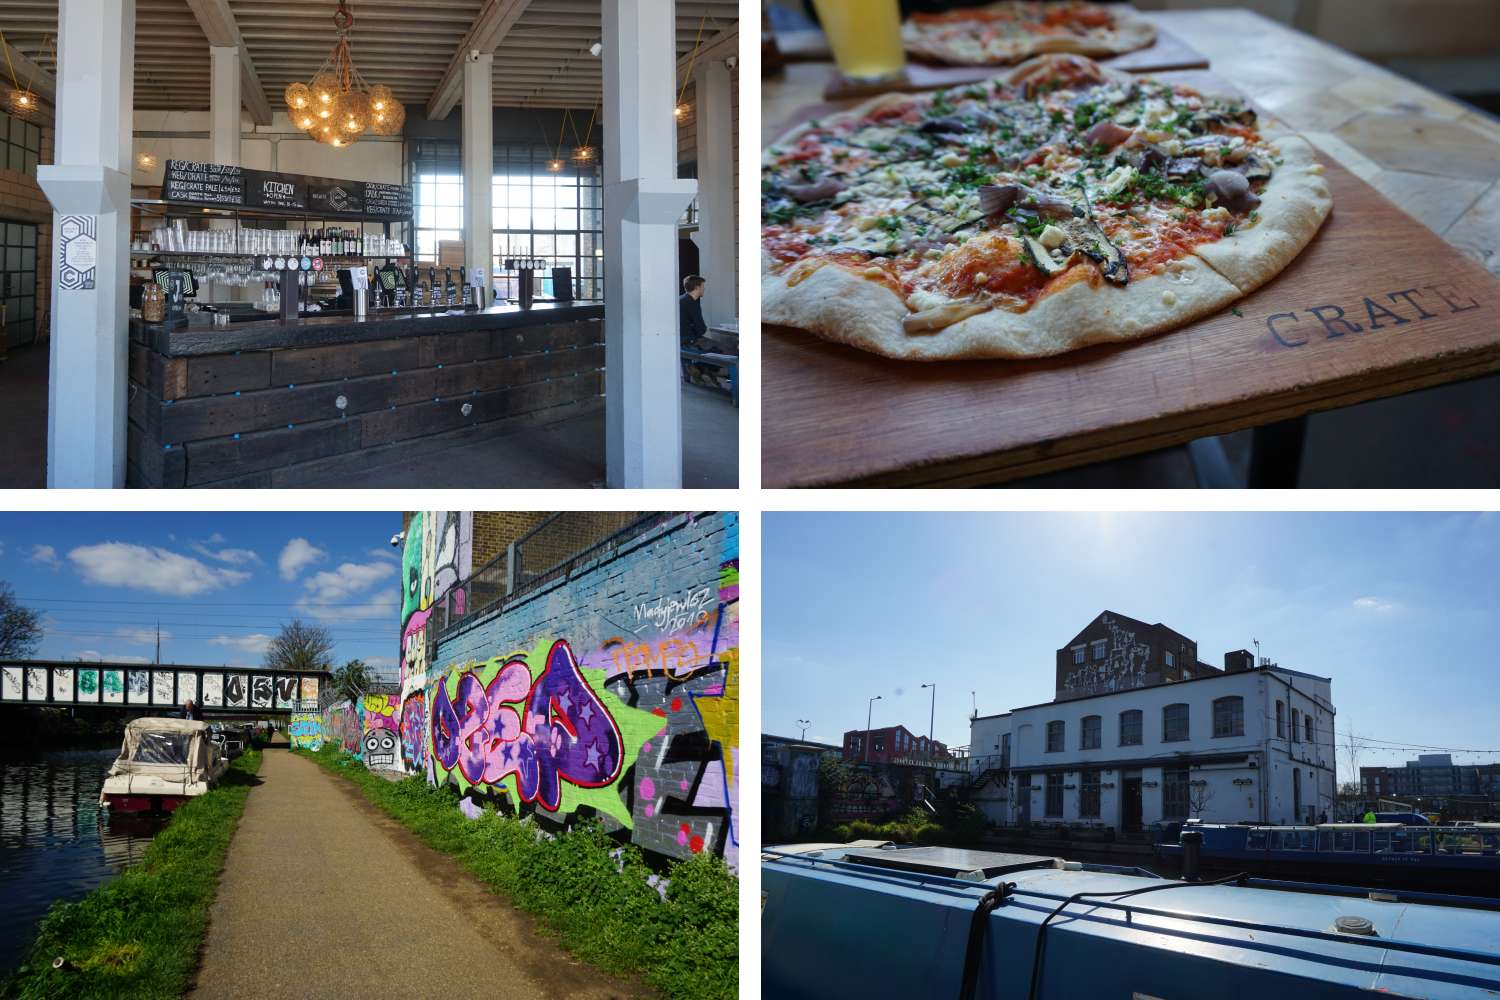 Crate Brewery and Pizzeria